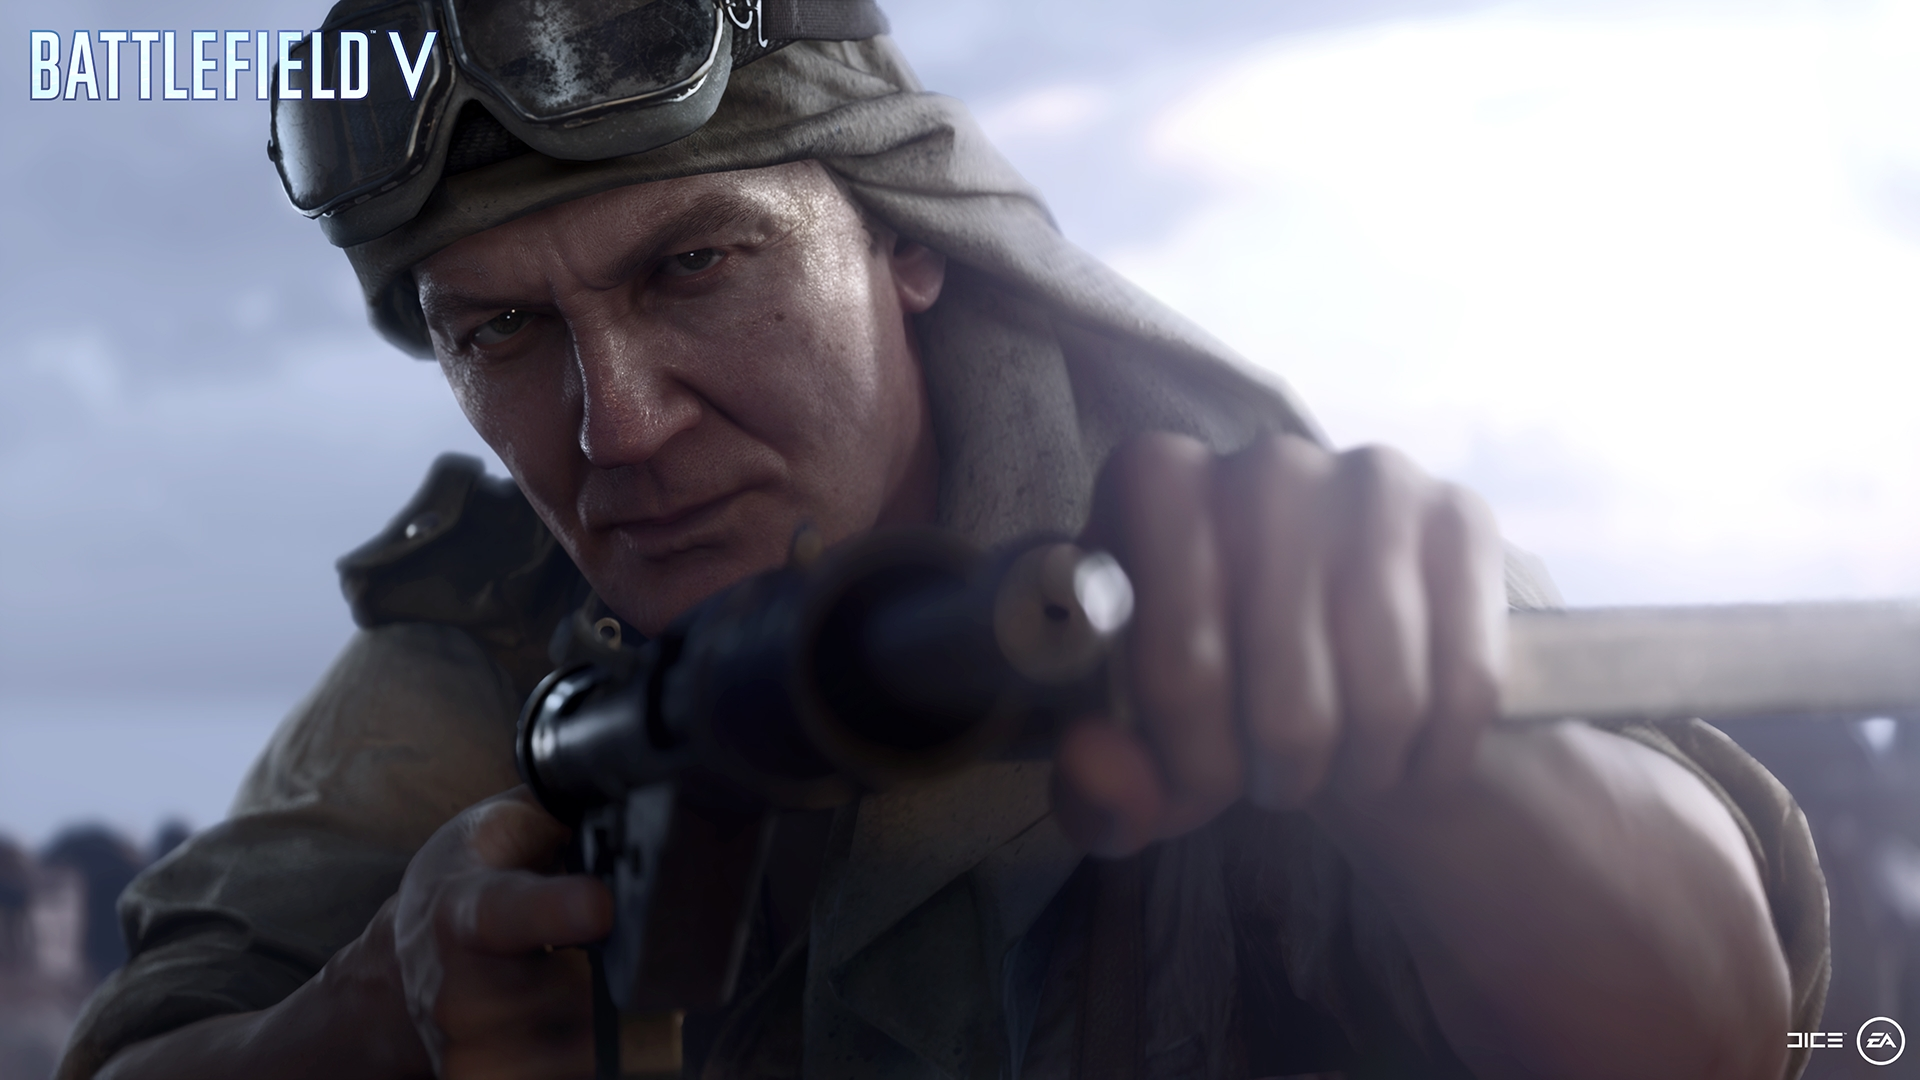 Battlefield V single-player hands-on and interview – 'We're focusing on stories you haven't heard before'